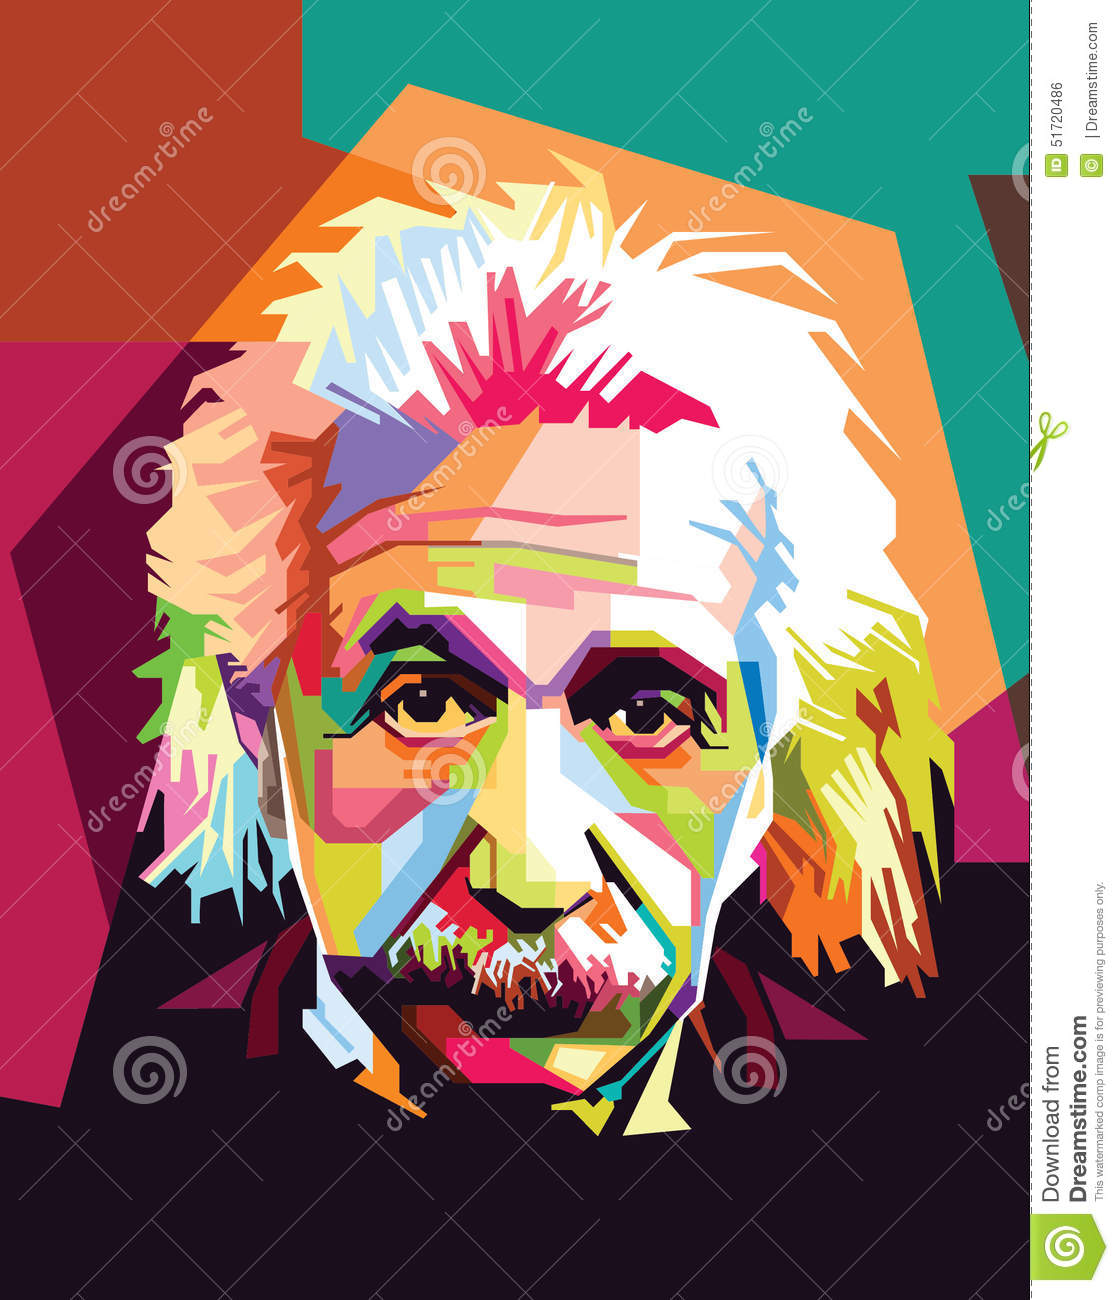 Albert Einstein Pop Art Editorial Photo - Image: 51720486